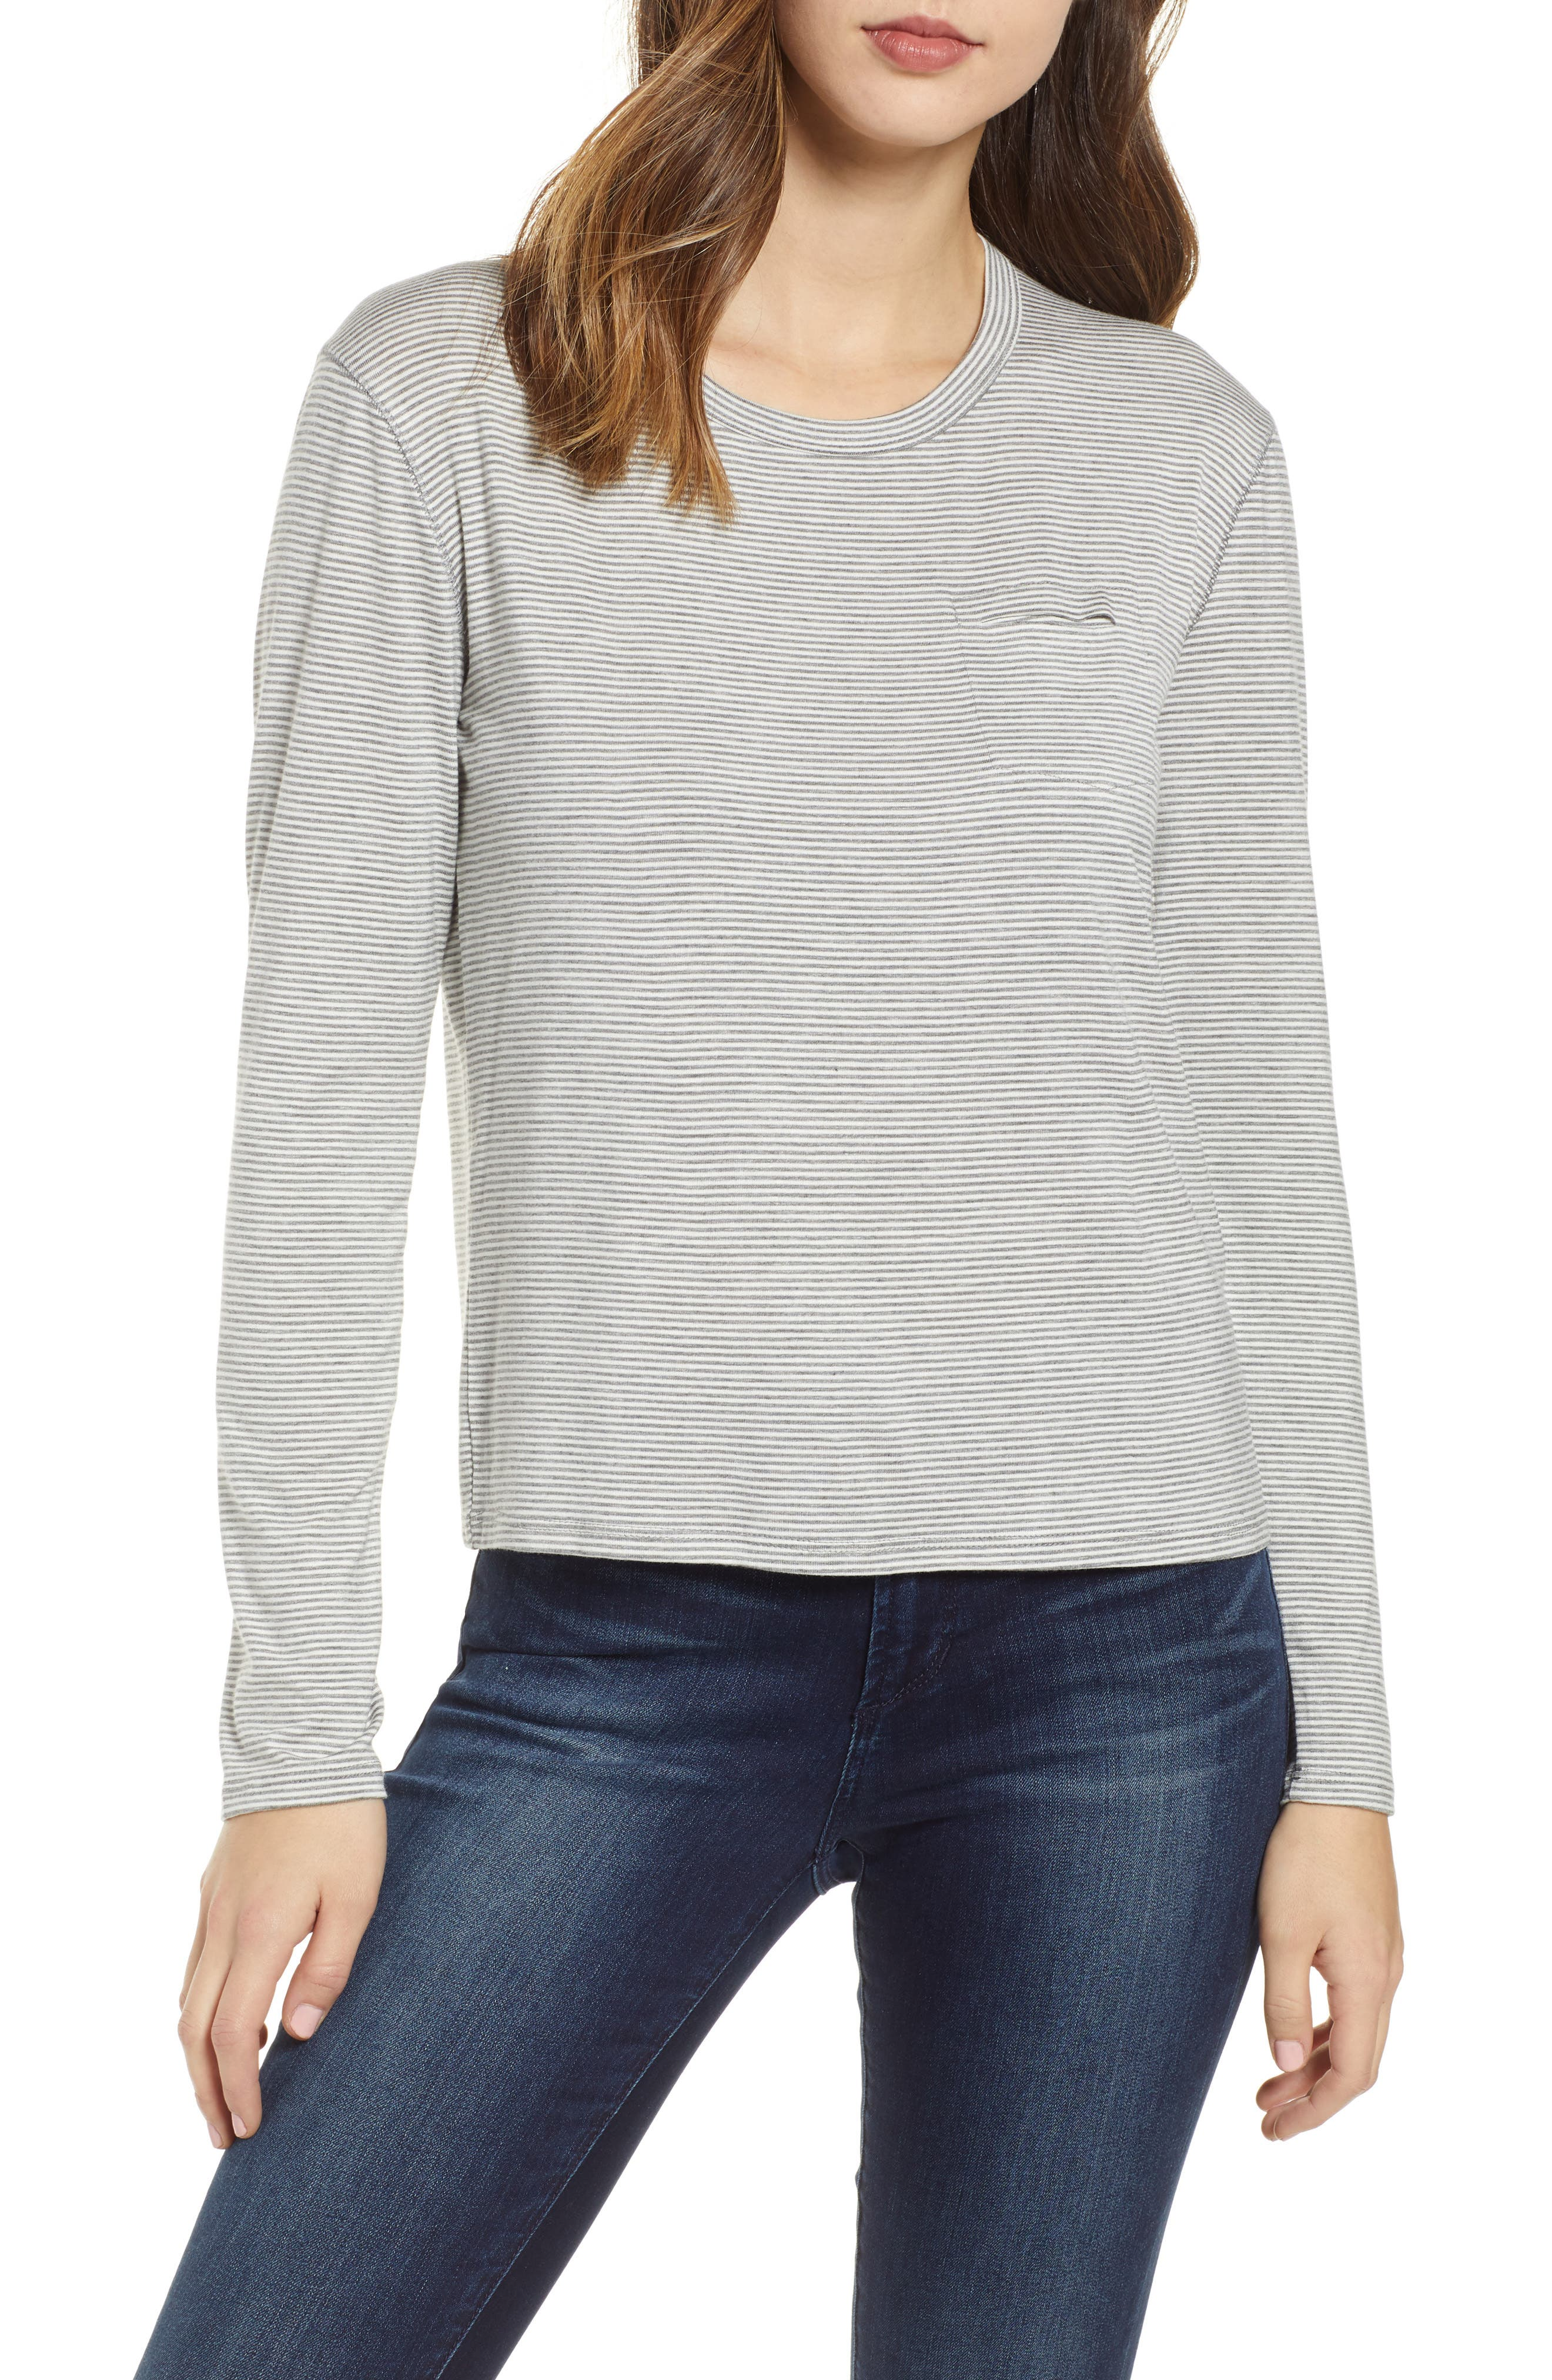 PROJECT SOCIAL T, Heathered Stripe Tee, Main thumbnail 1, color, GREY/ WHITE